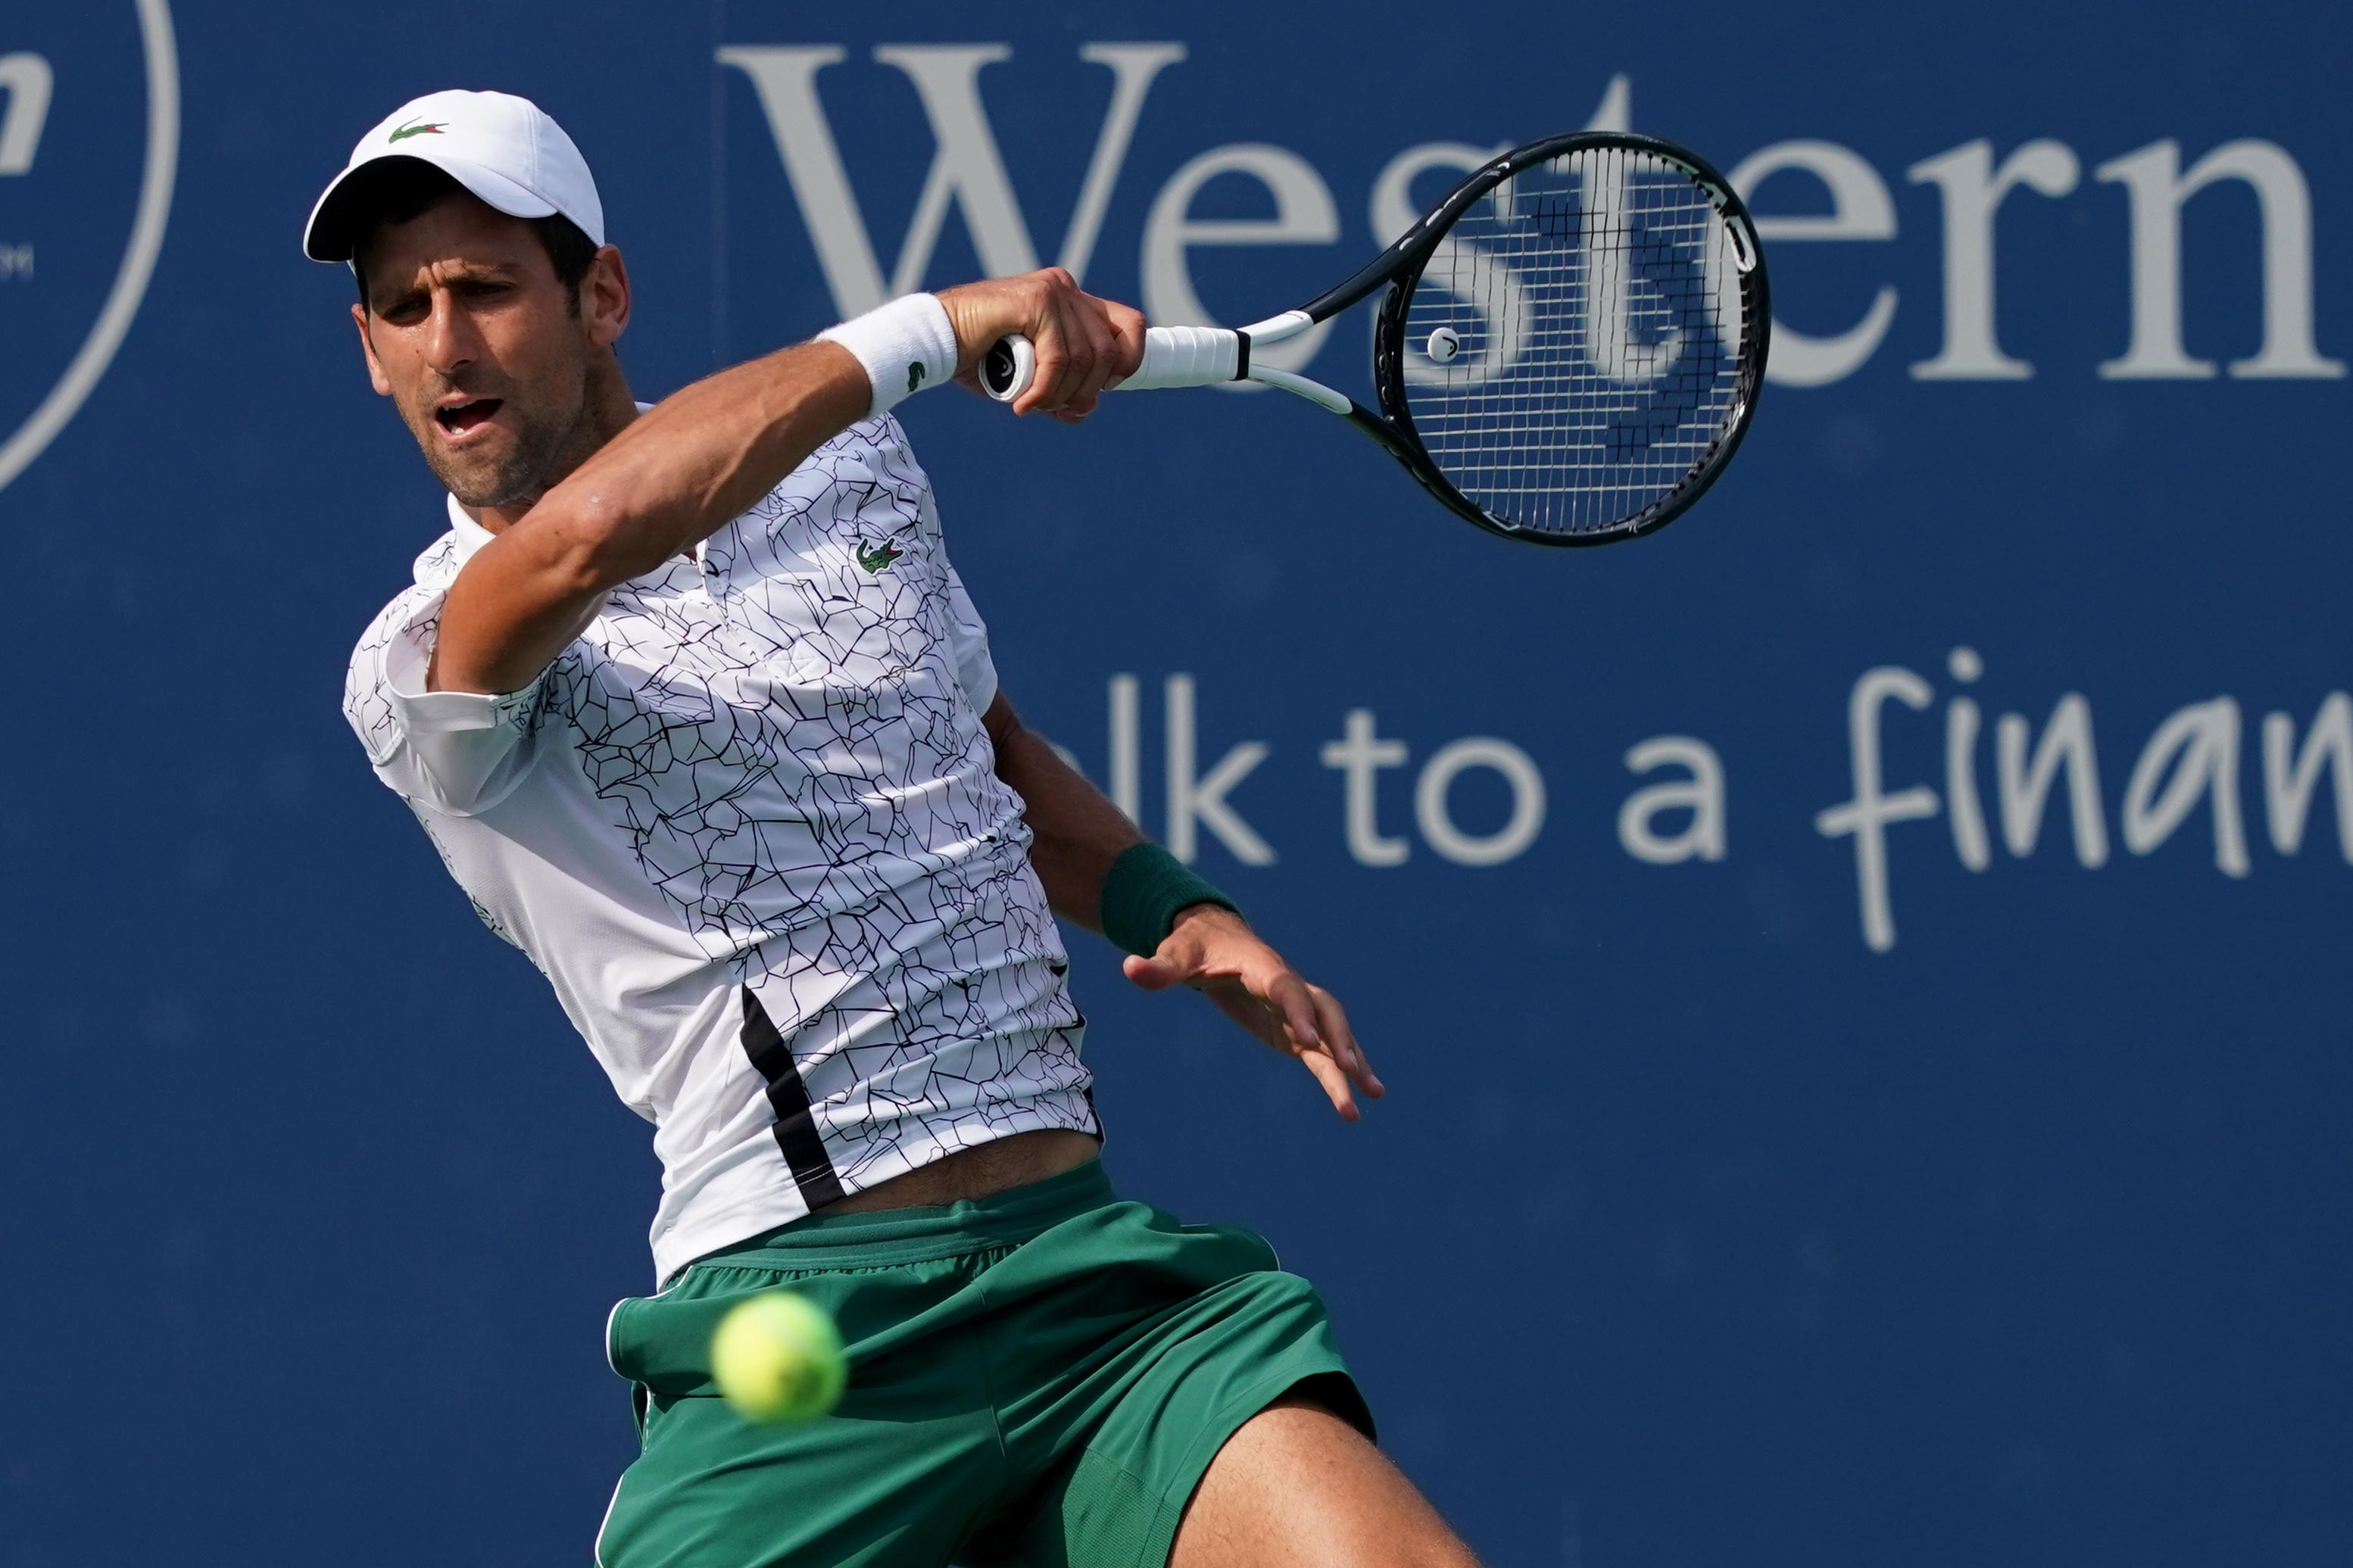 The Serb closed out victory on serve as Federer sailed wide on match point